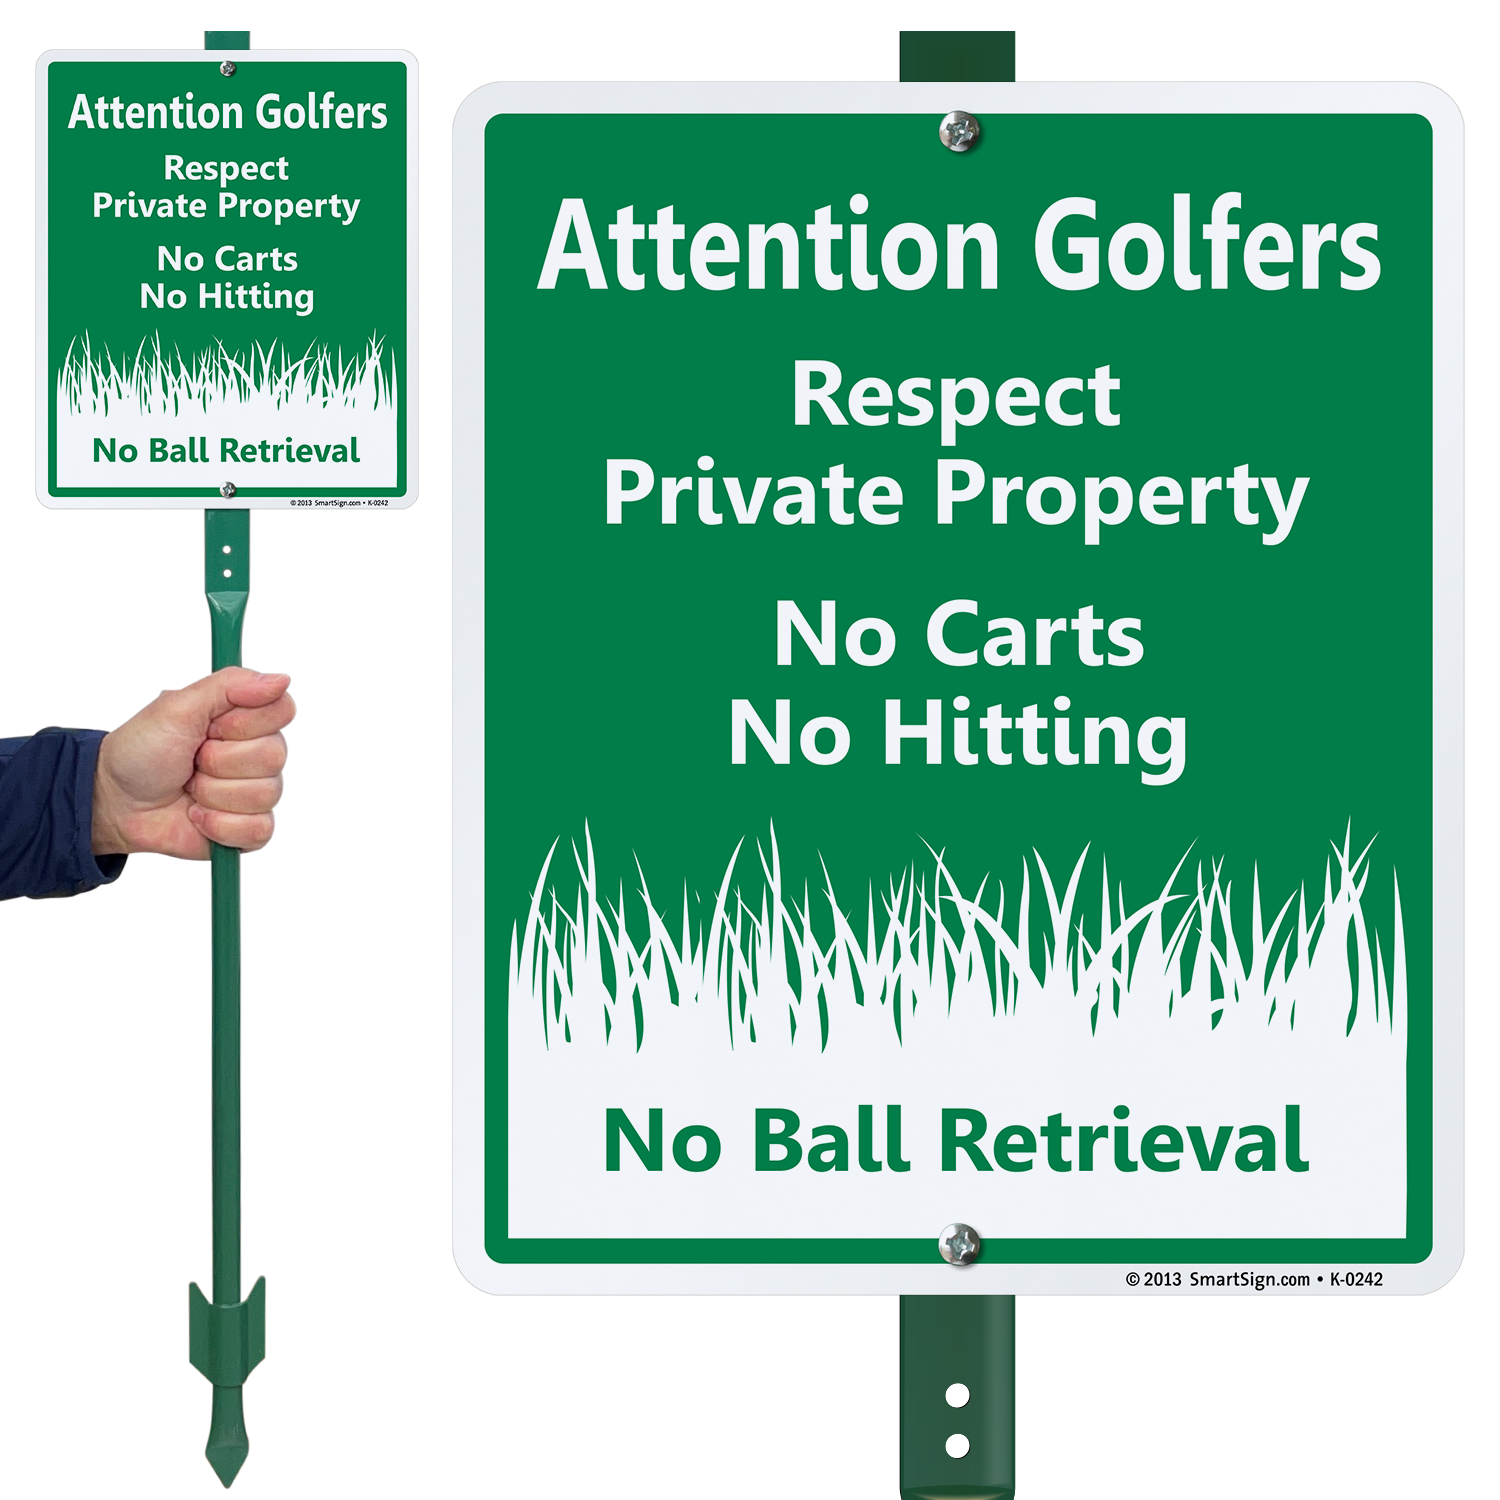 No Carts No Hitting - Attention Golfers Private Property